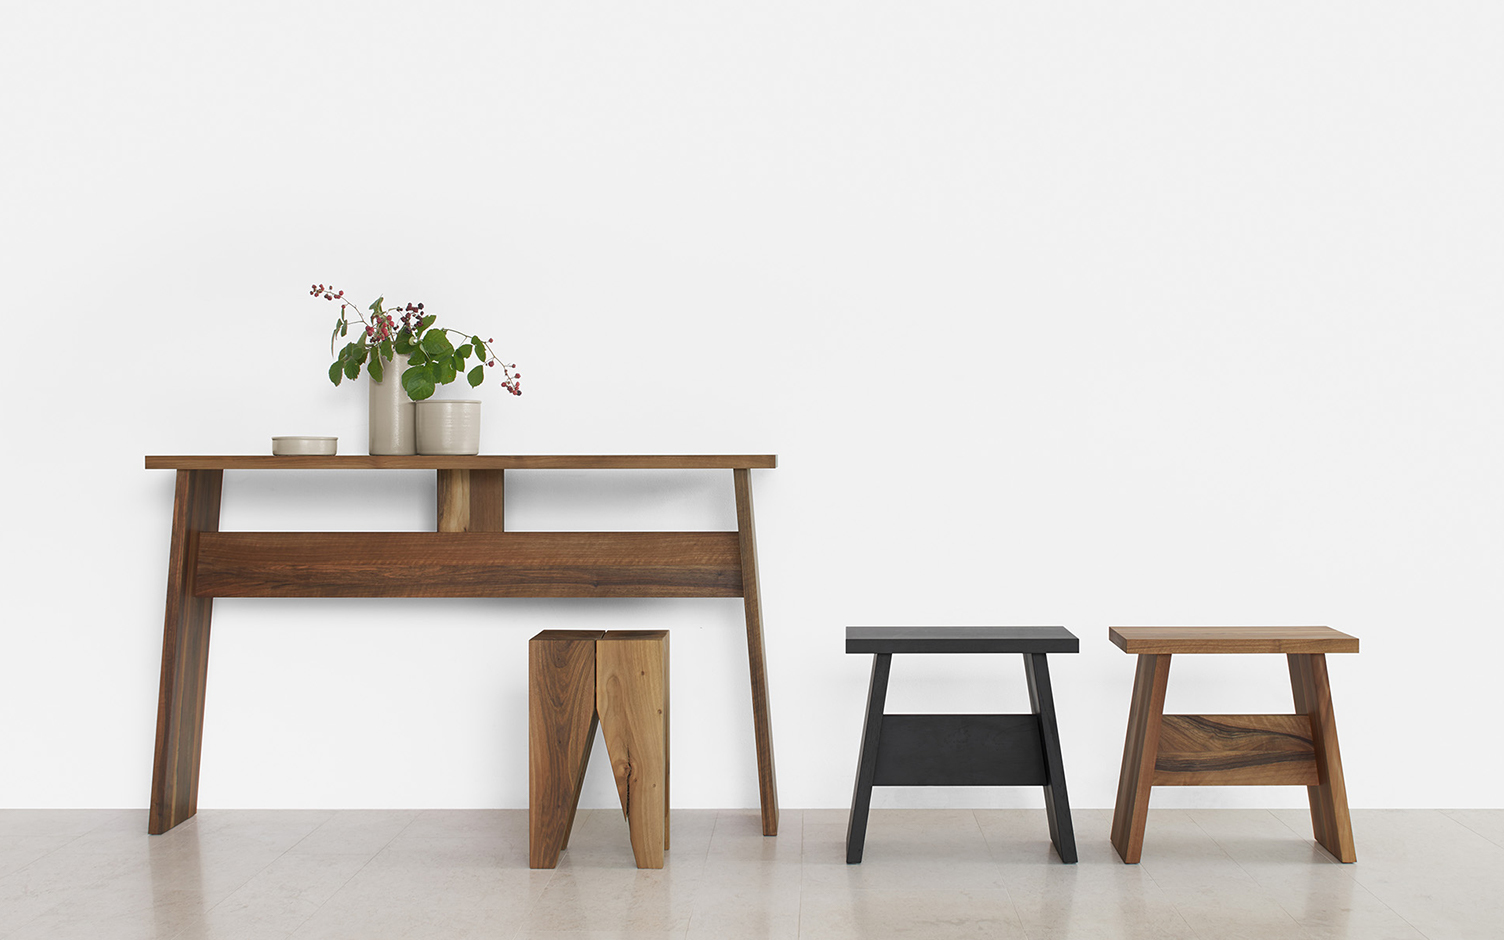 Low Stools catalogue image